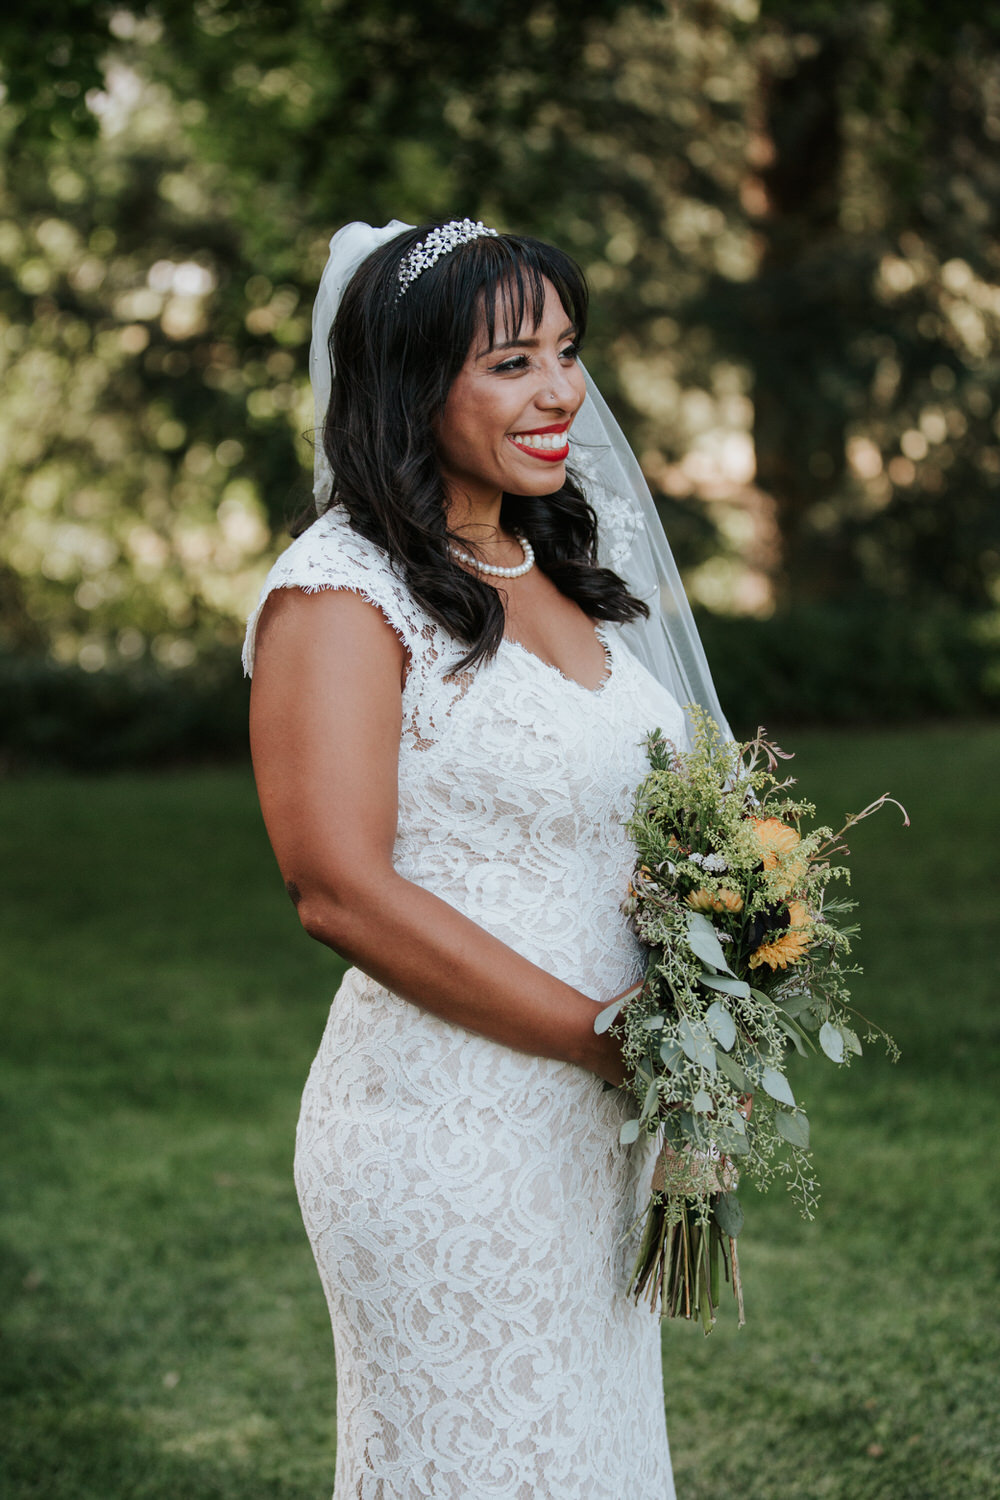 Southern California wedding // California wedding photographer // Austin wedding photographer // California wedding photography